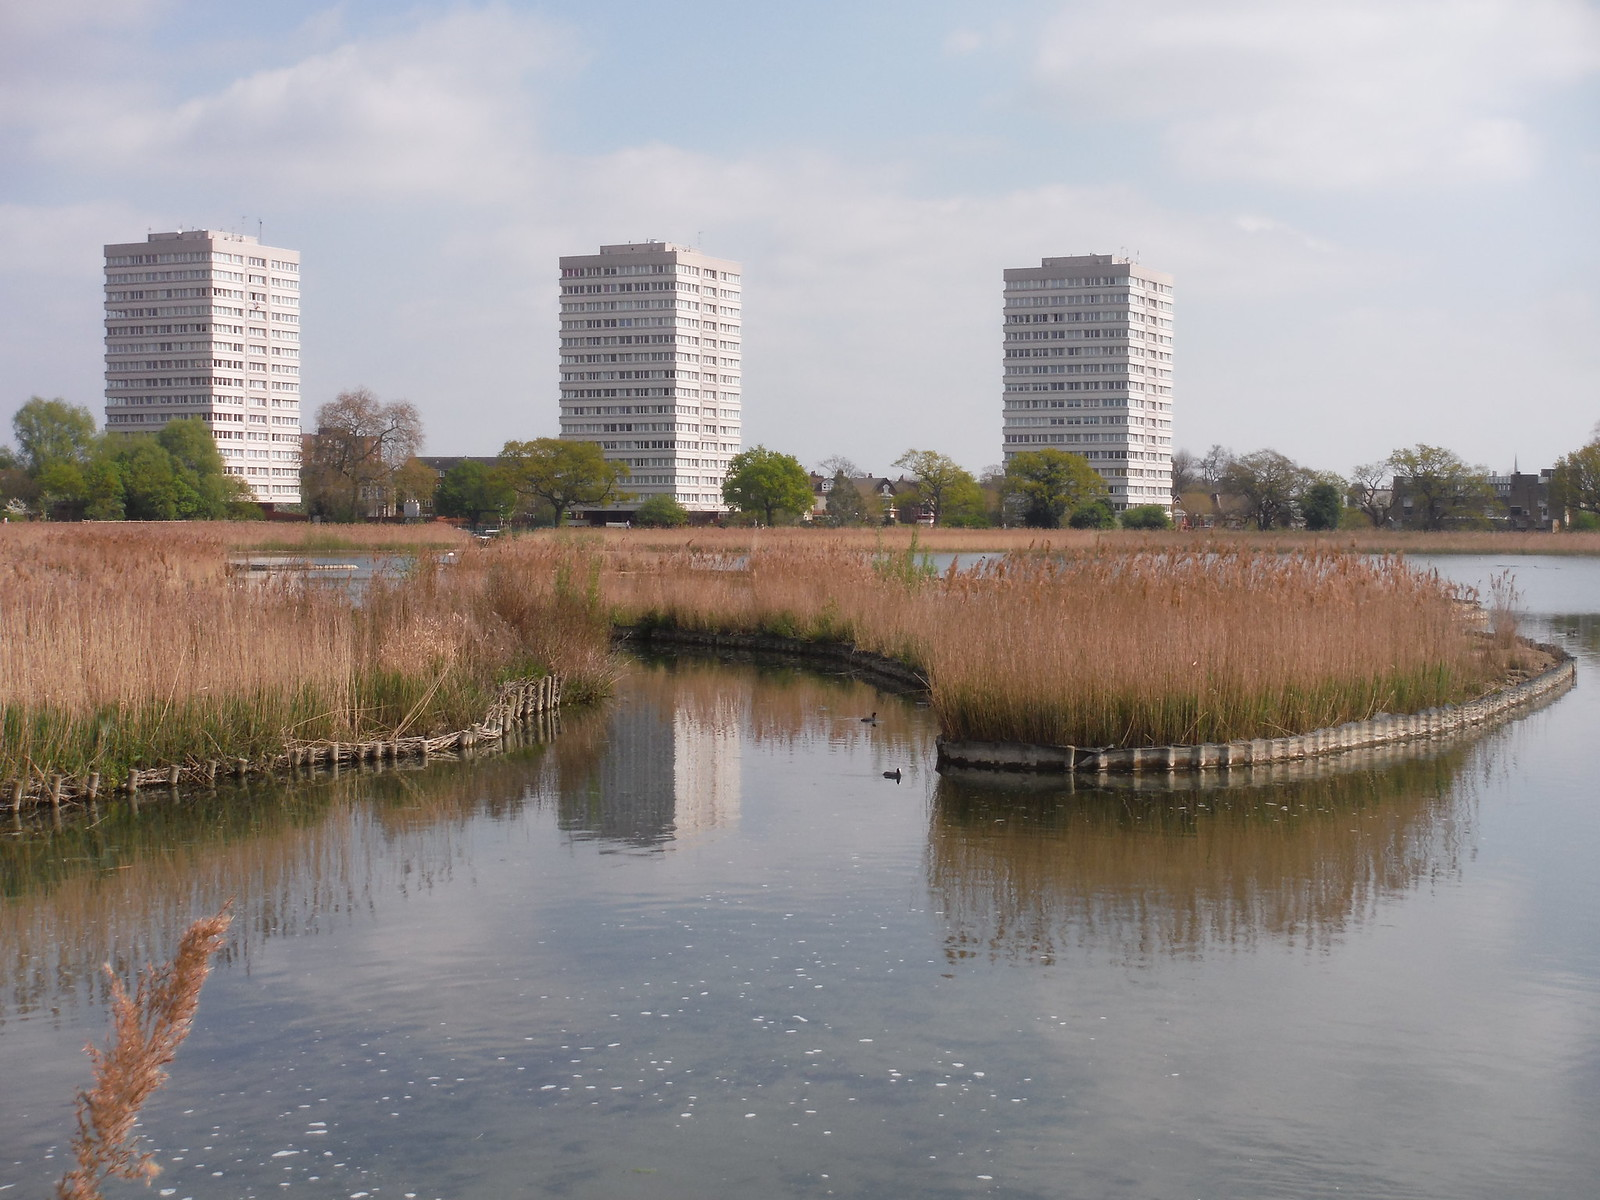 Reed Beds and High Rises, Woodberry Wetlands SWC Short Walk 26 - Woodberry Wetlands (Stoke Newington Reservoirs)